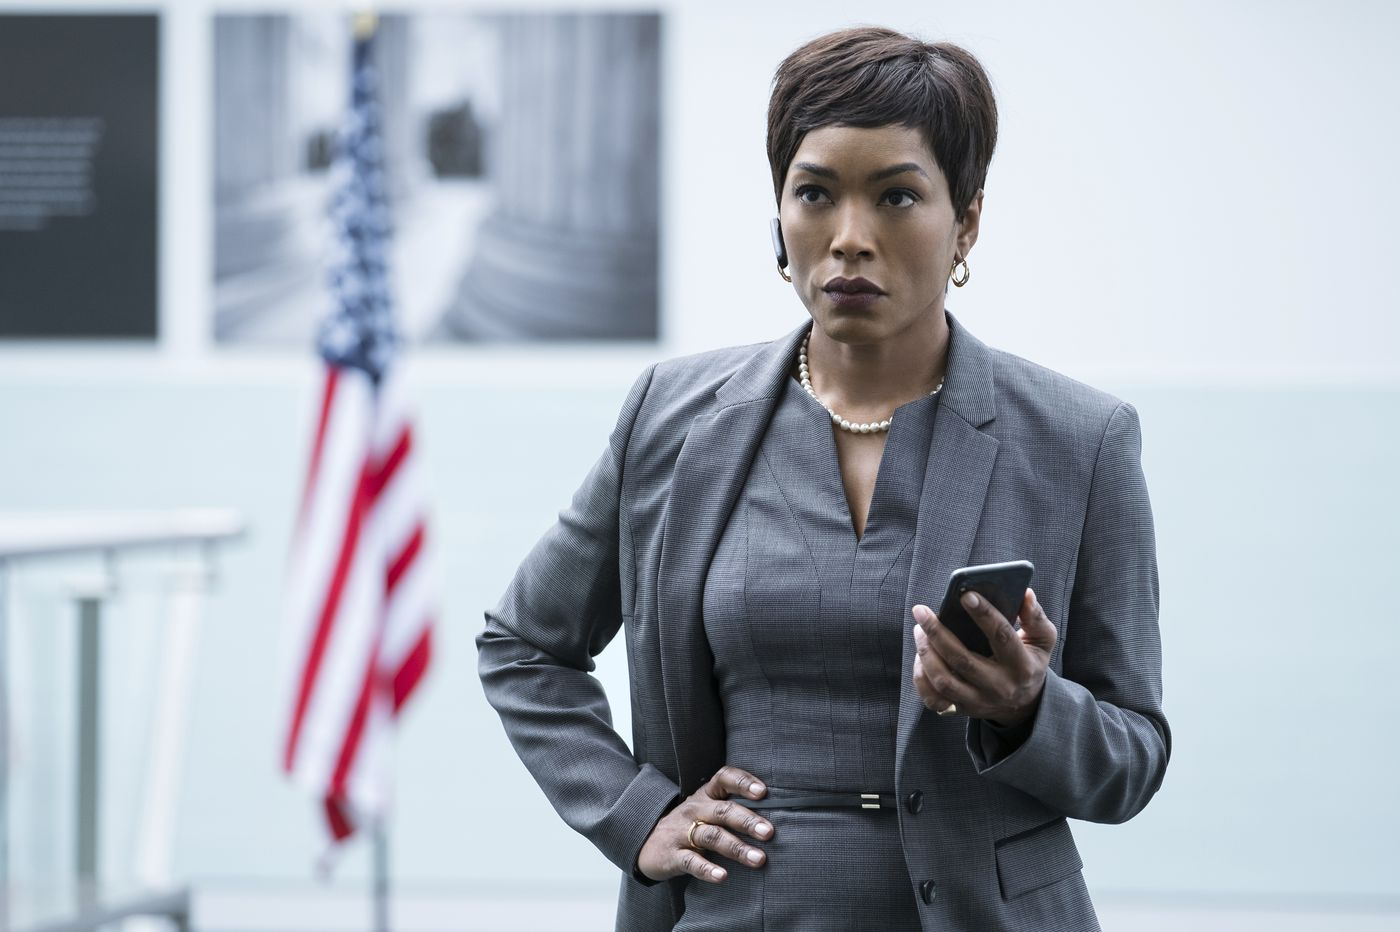 For trailblazer Angela Bassett, impossible missions are old hat